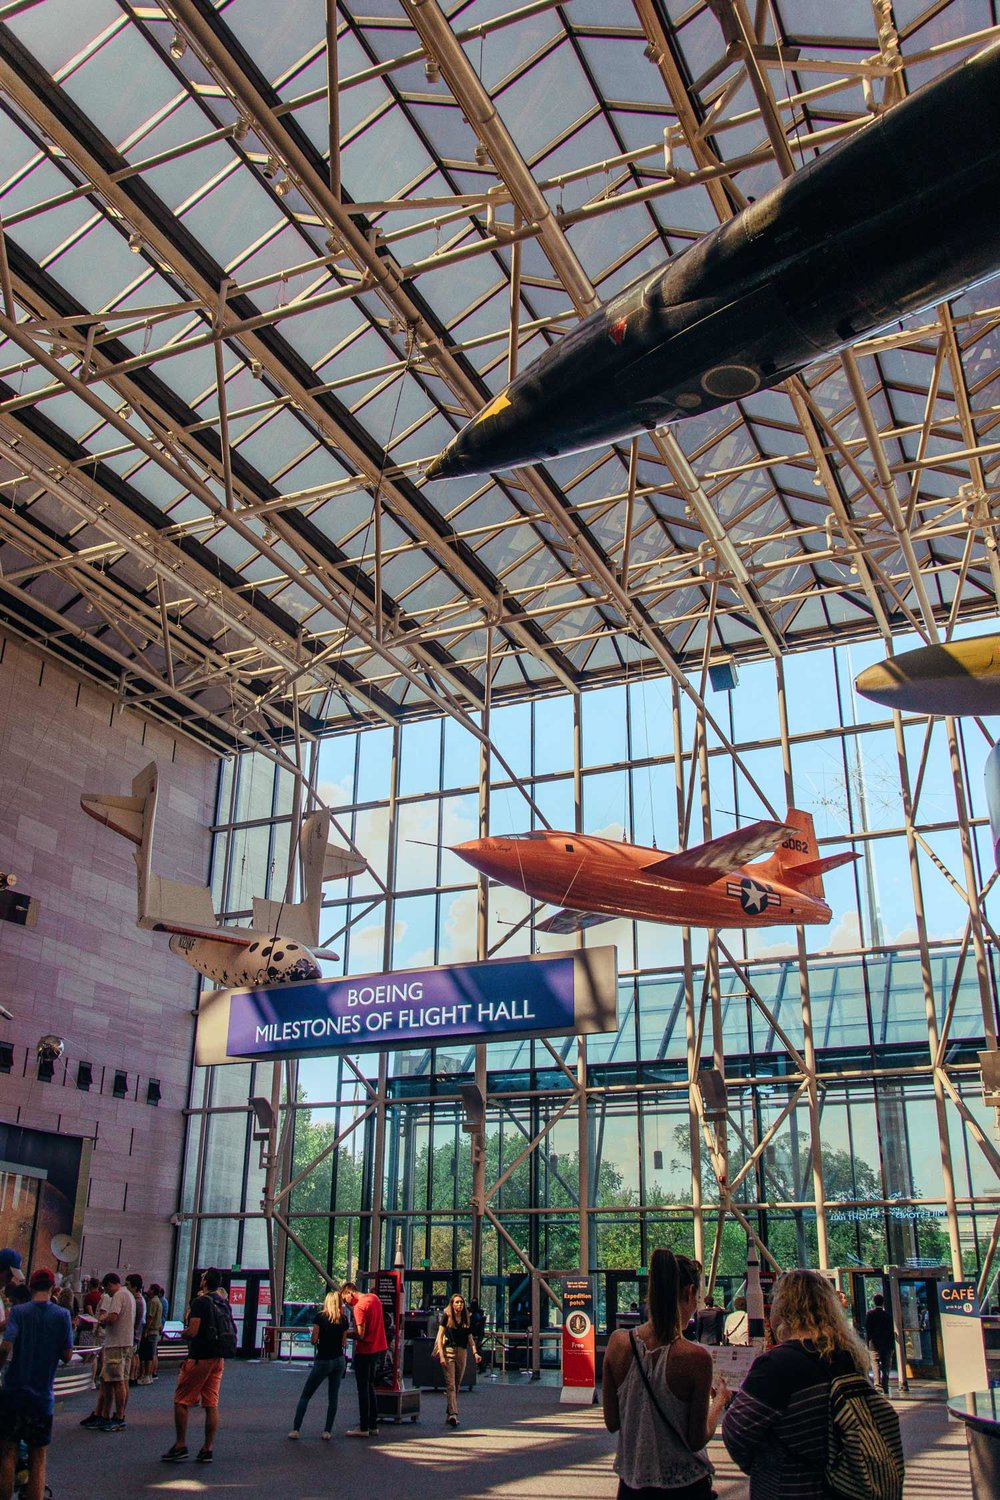 Smithsonian_Air_And_Space_Museum_2018_Ruo_Ling_Lu.jpg